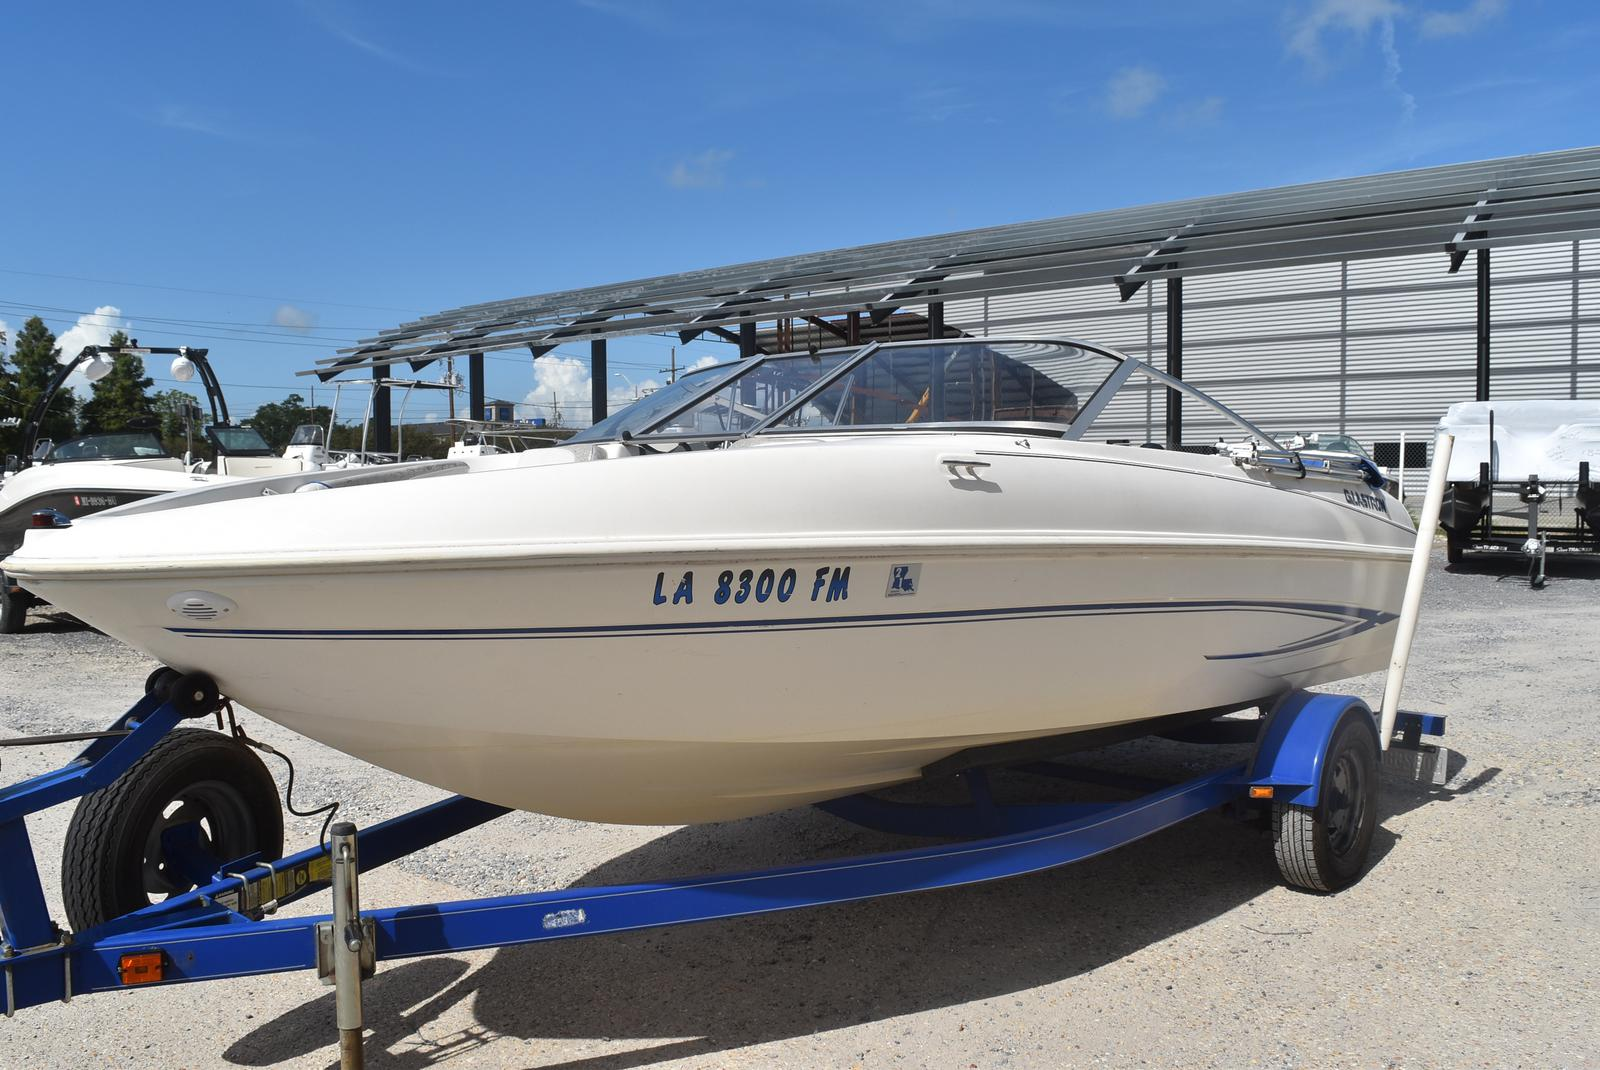 2006 Glastron boat for sale, model of the boat is MX 175 & Image # 19 of 21